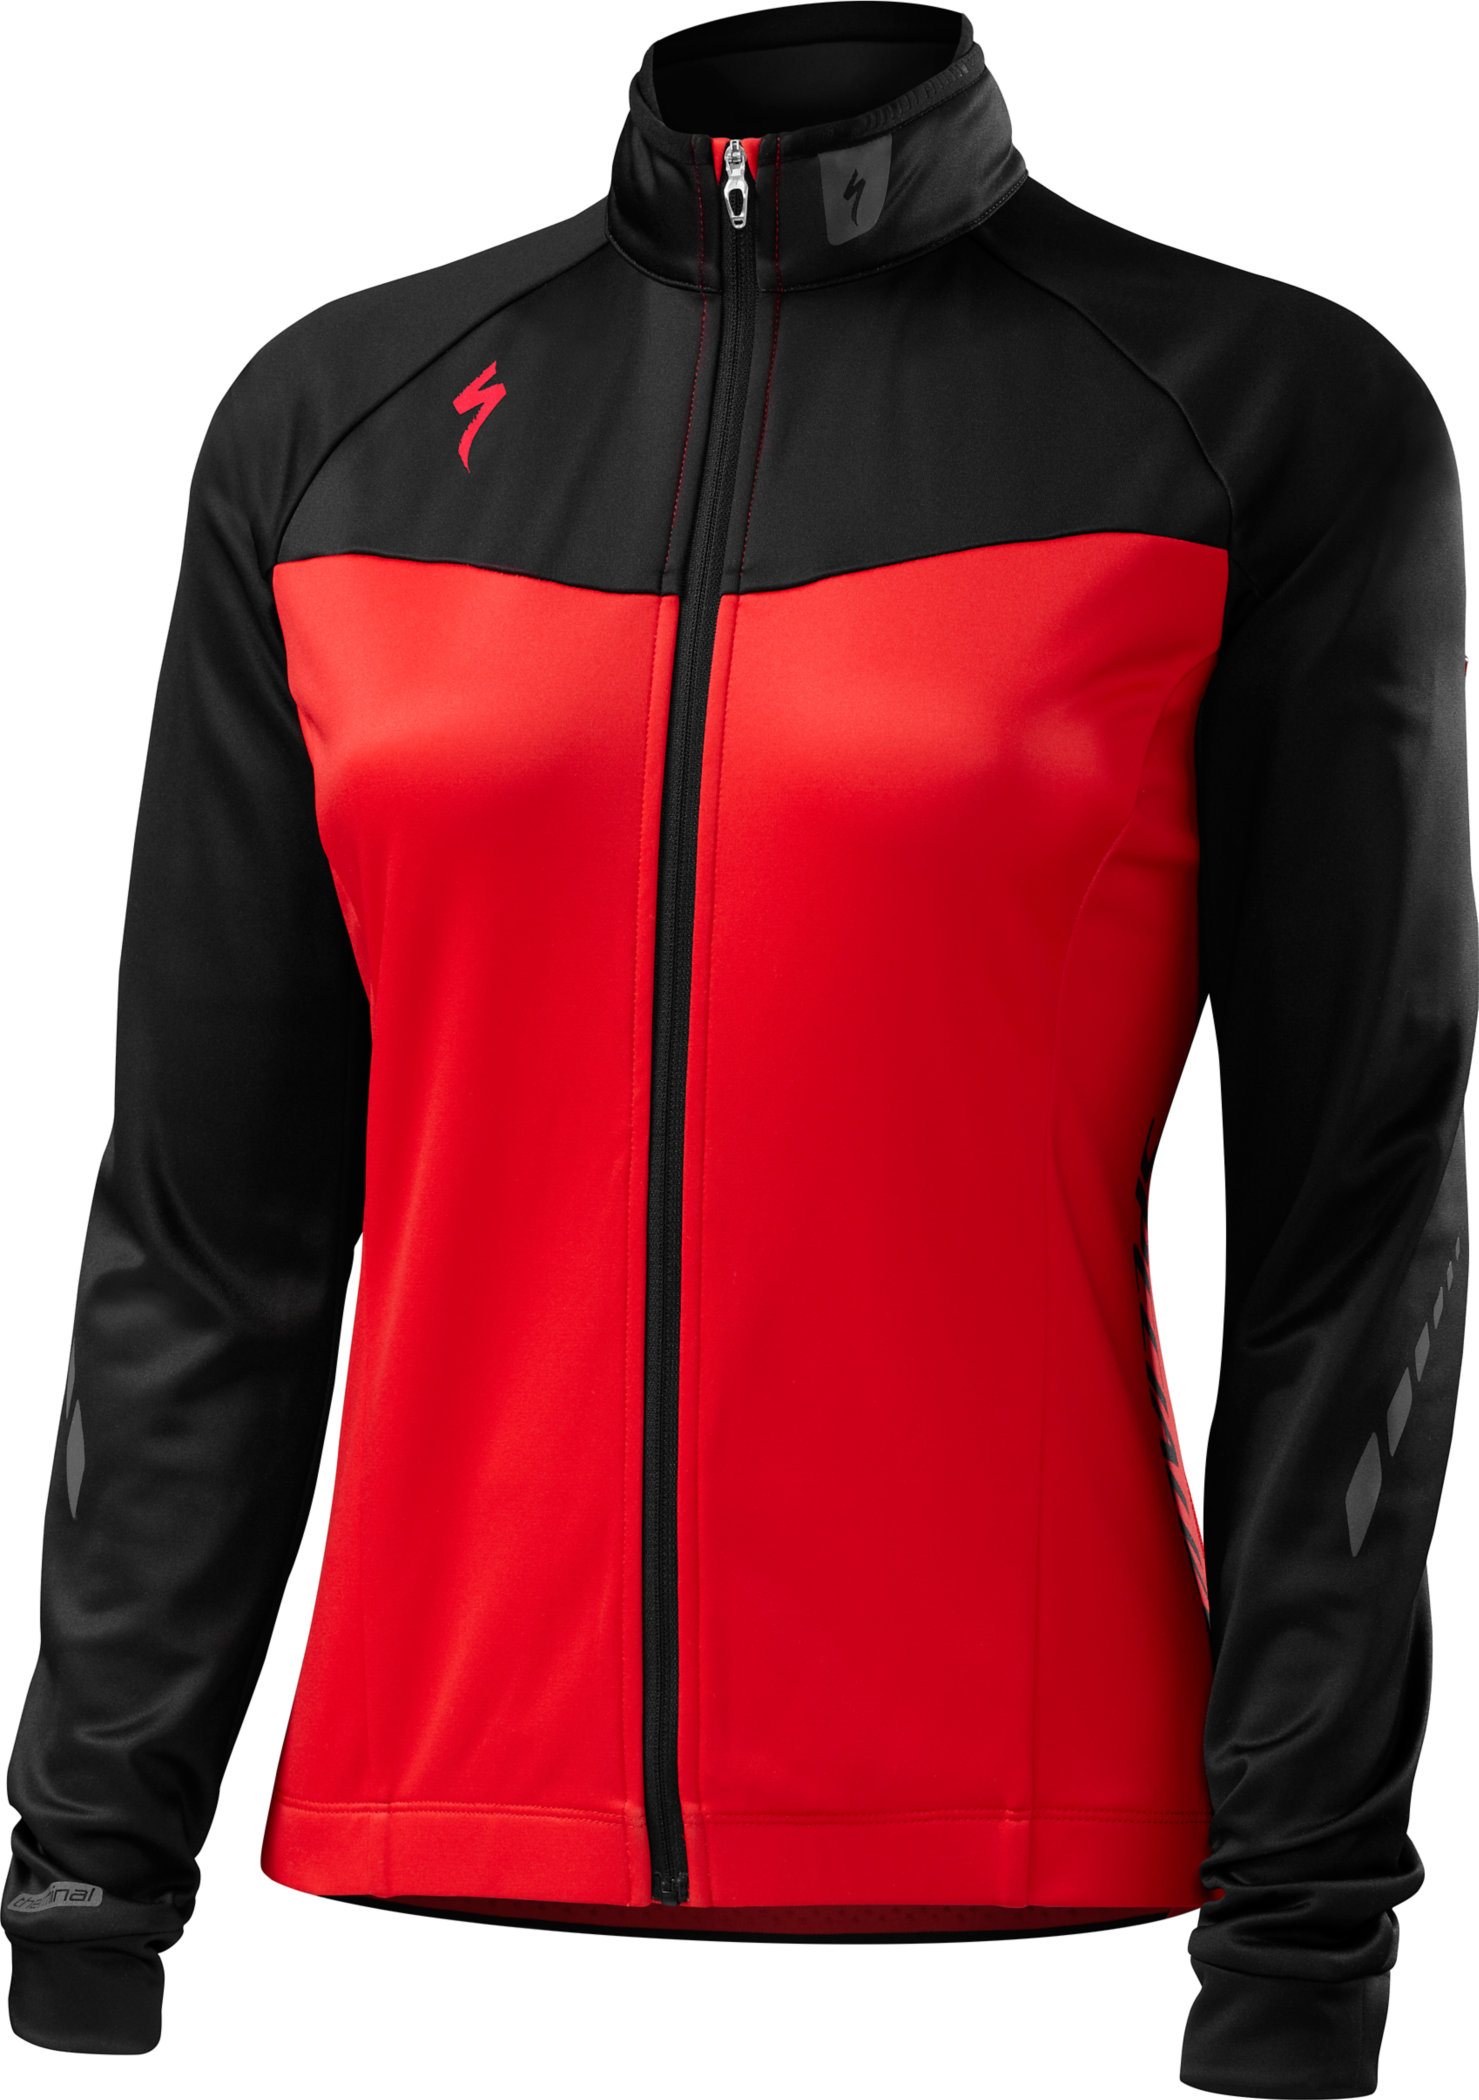 Specialized Women´s Therminal Long Sleeve Jersey Red/Black Team Large - Alpha Bikes